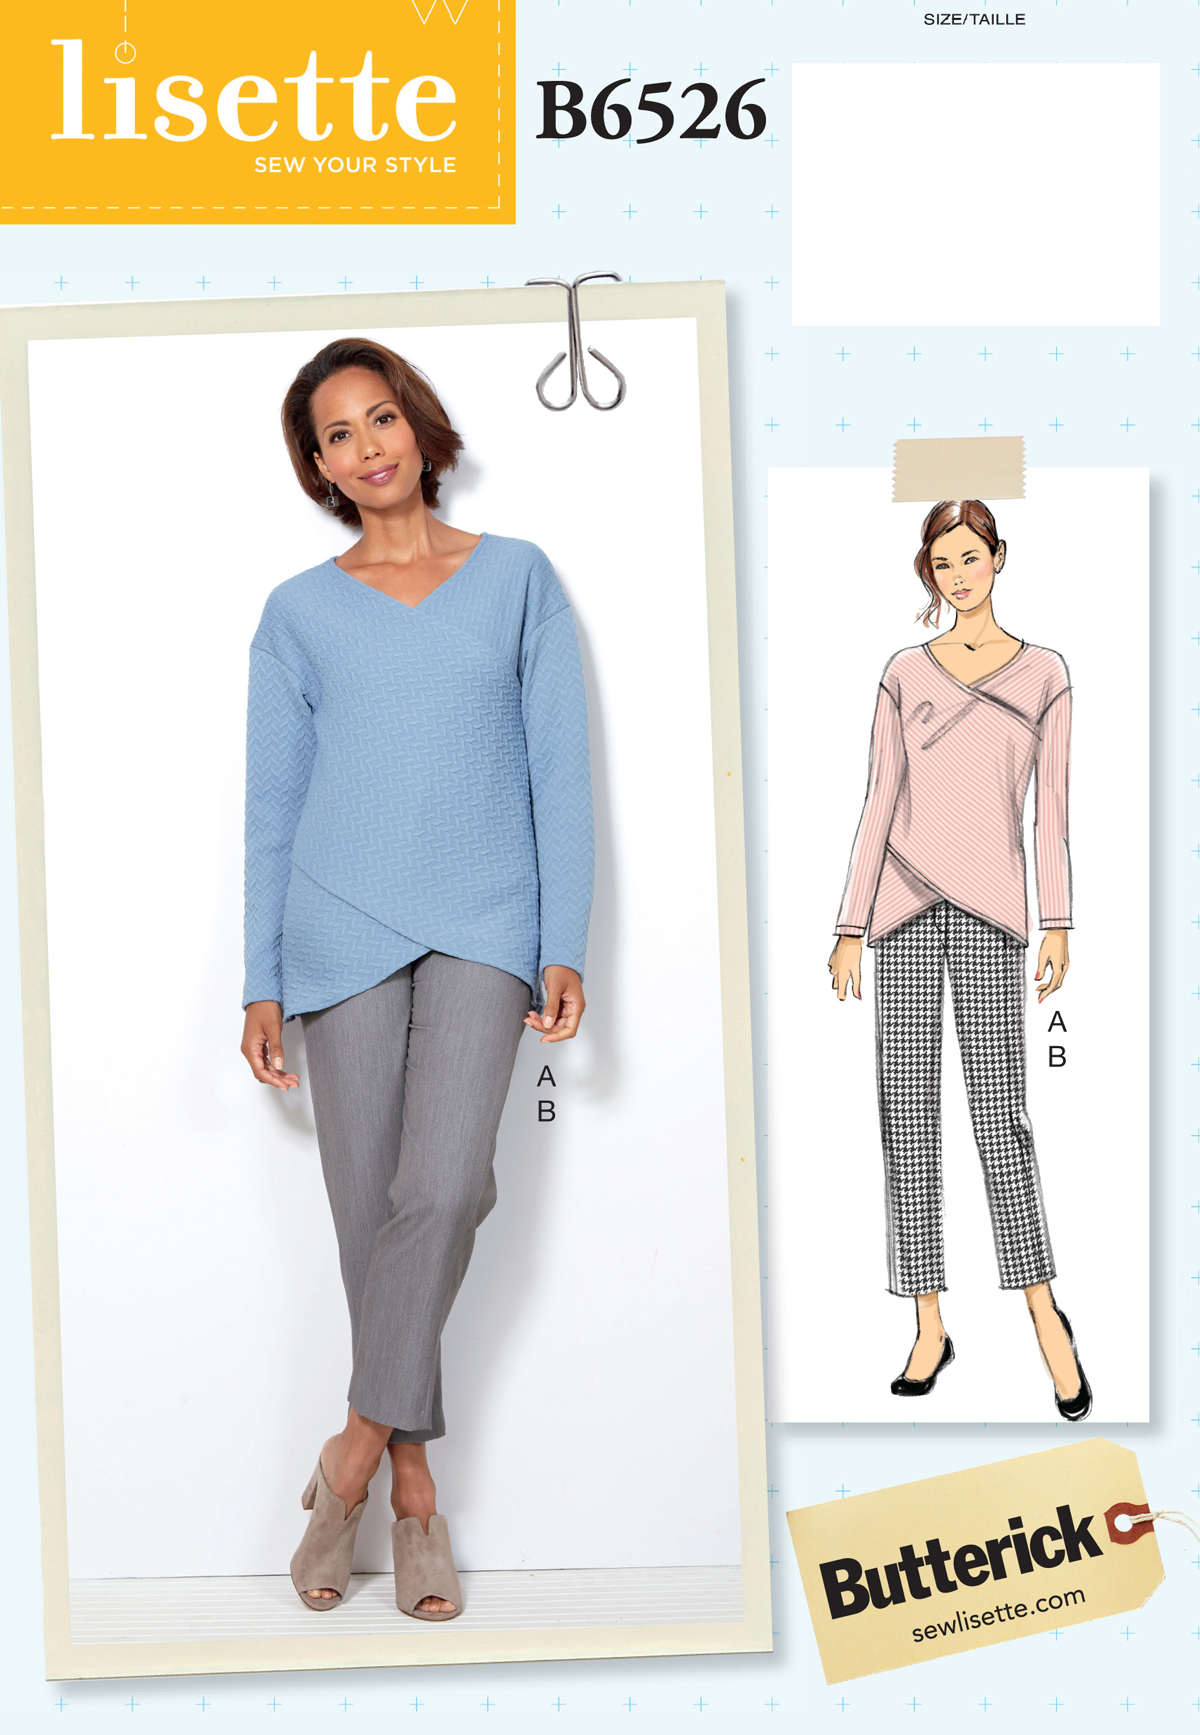 introducing B6526, a new top and pants pattern | Blog | Lisette